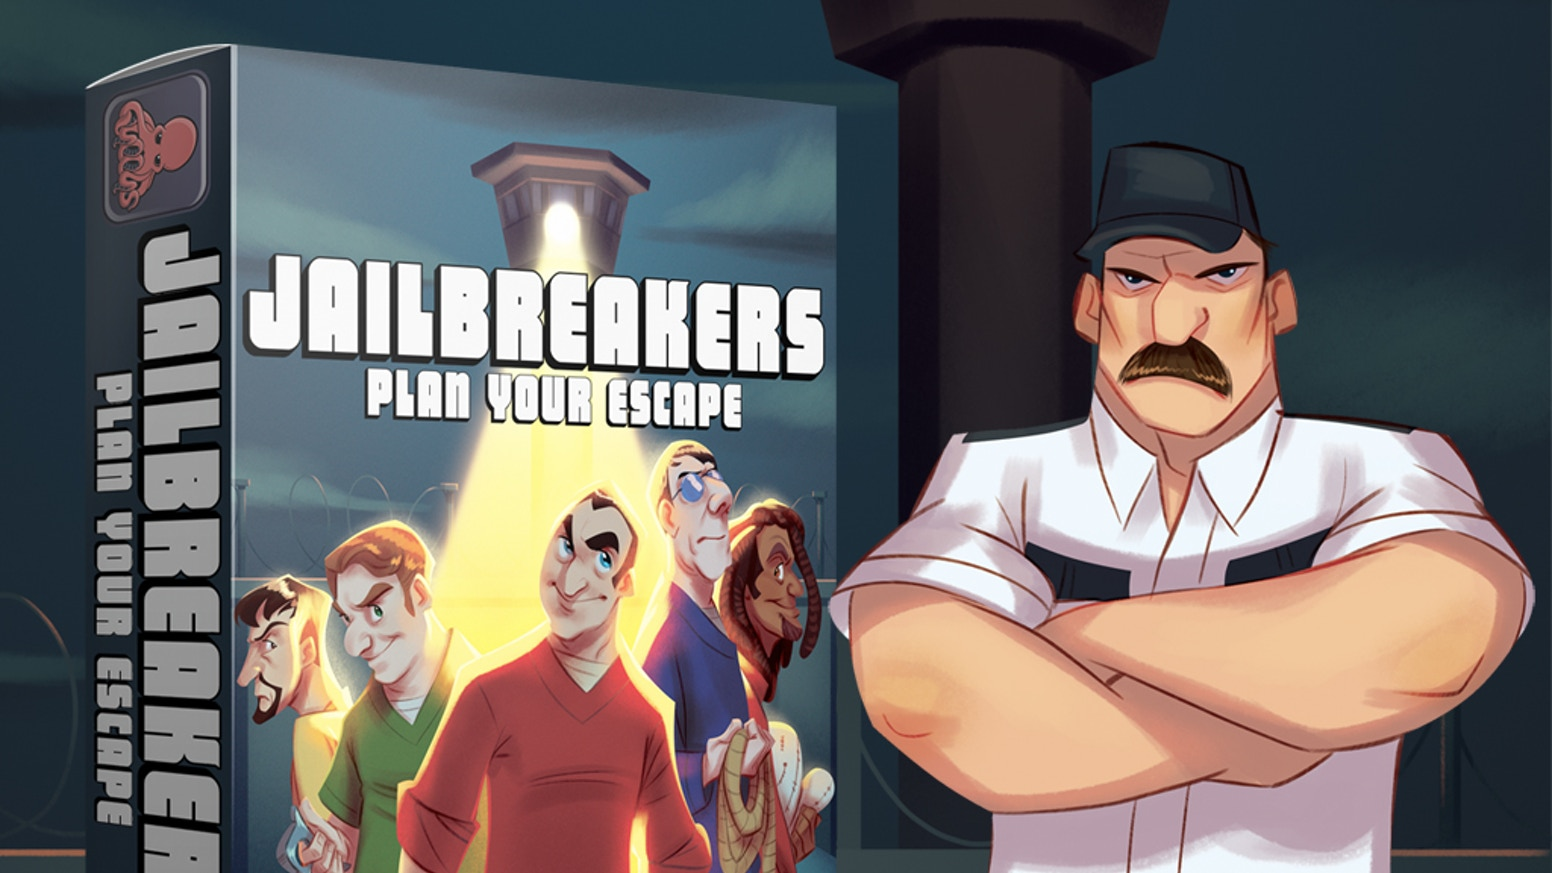 Jailbreakers: Plan Your Escape is a press your luck dice and card game where you take on the role of prisoners plotting their escape!